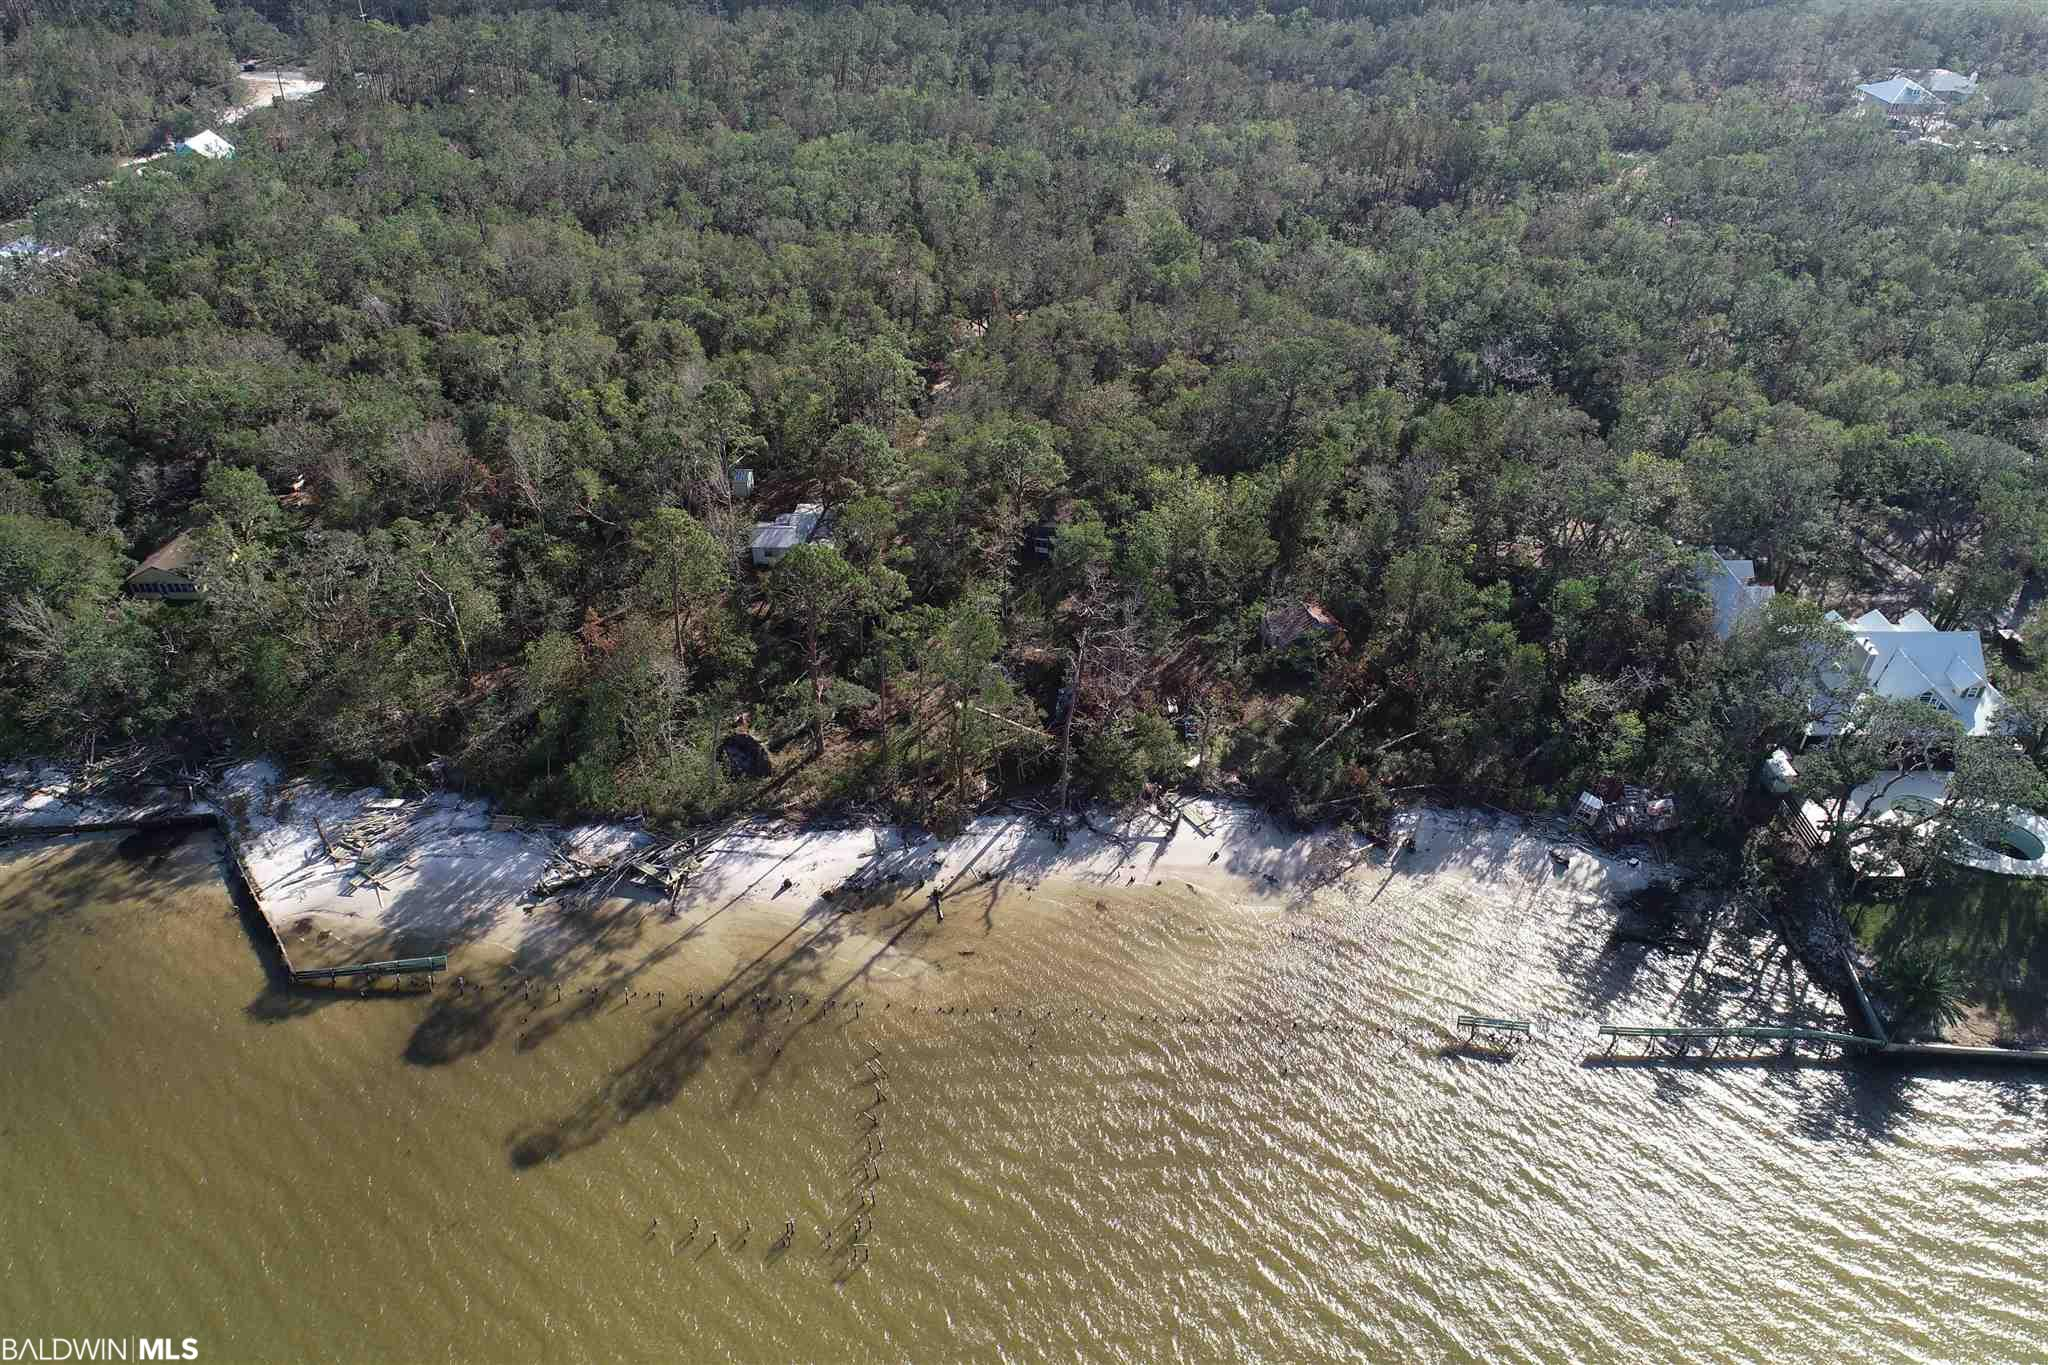 RARE OPPORTUNITY TO OWN 15.5 ACRES ON BON SECOUR BAY!  Family has decided it is time to sell the land that has been in their family since the 1850s.  There are 5 parcels that provide 895' waterfront on Bon Secour Bay and 891' road frontage on Ft. Morgan Rd.  The property is heavily wooded and the bulk is designated as a Code X Flood Zone.  There are no wetlands on the property nor beach mouse habitat.